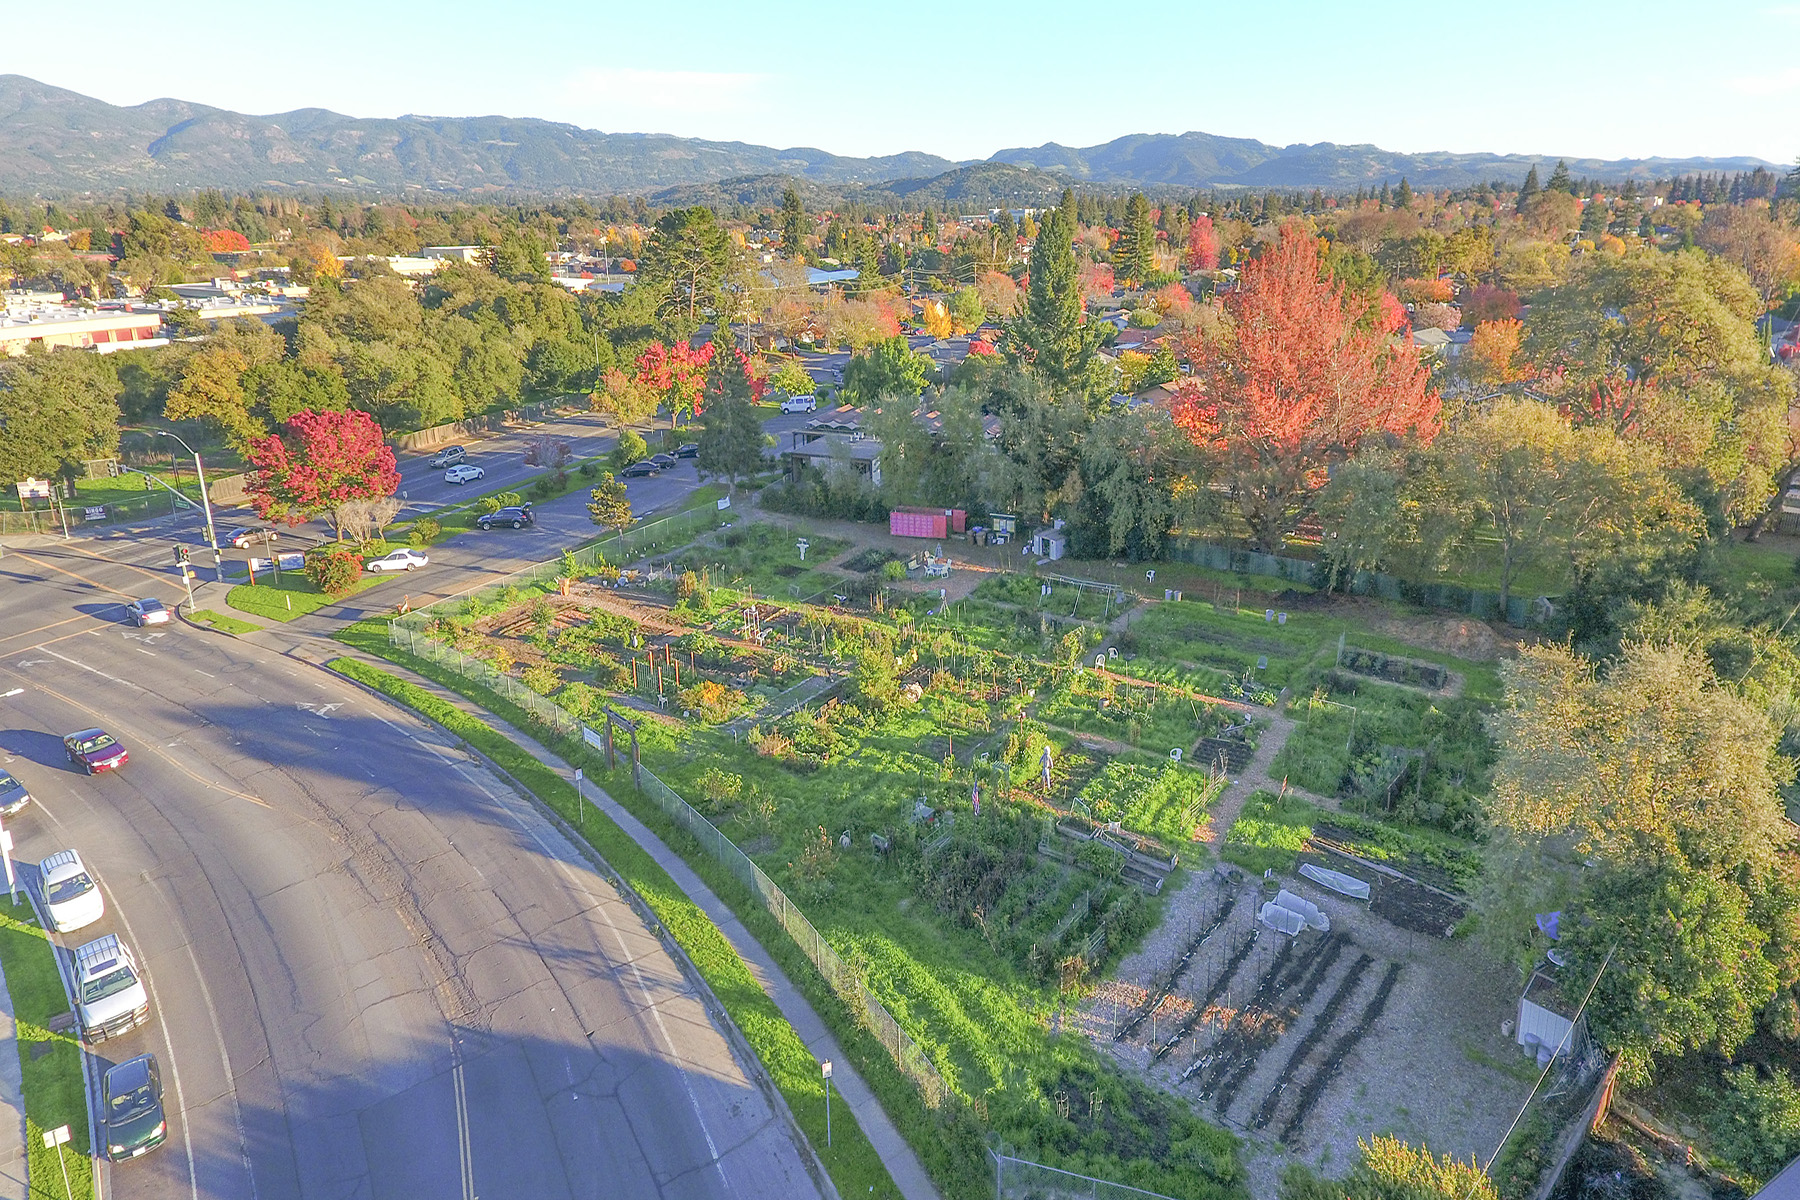 Land for Sale at 3875 Jefferson St, Napa, CA 94558 3875 Jefferson St Napa, California, 94558 United States